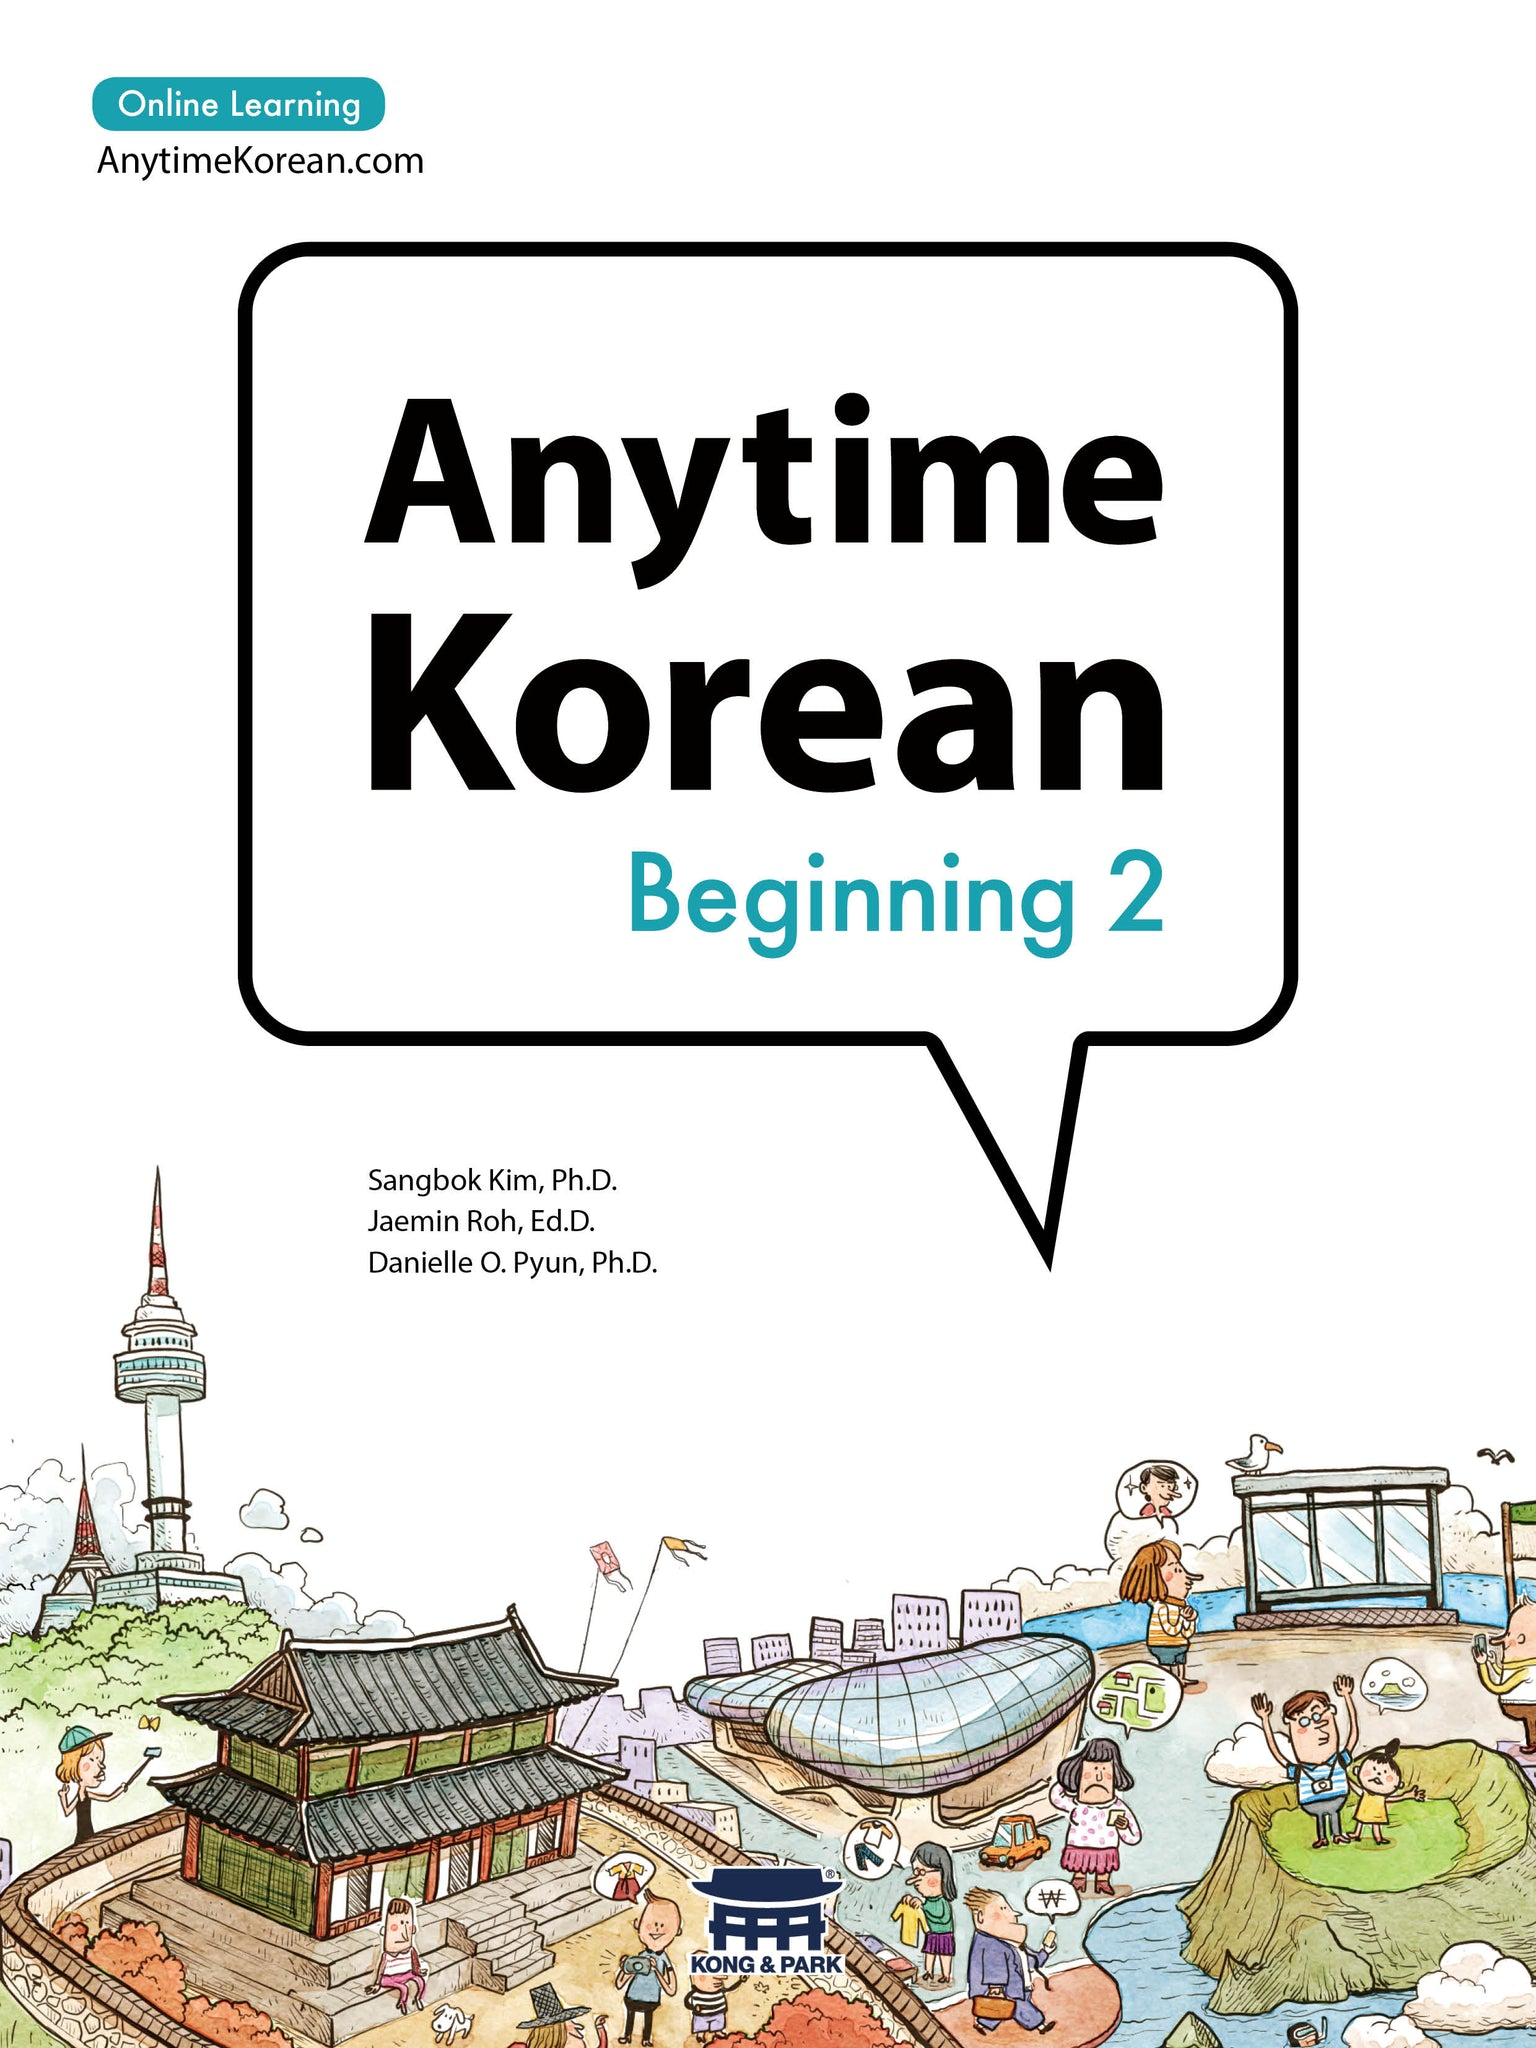 Anytime Korean Beginning 2 - booksonkorea.com